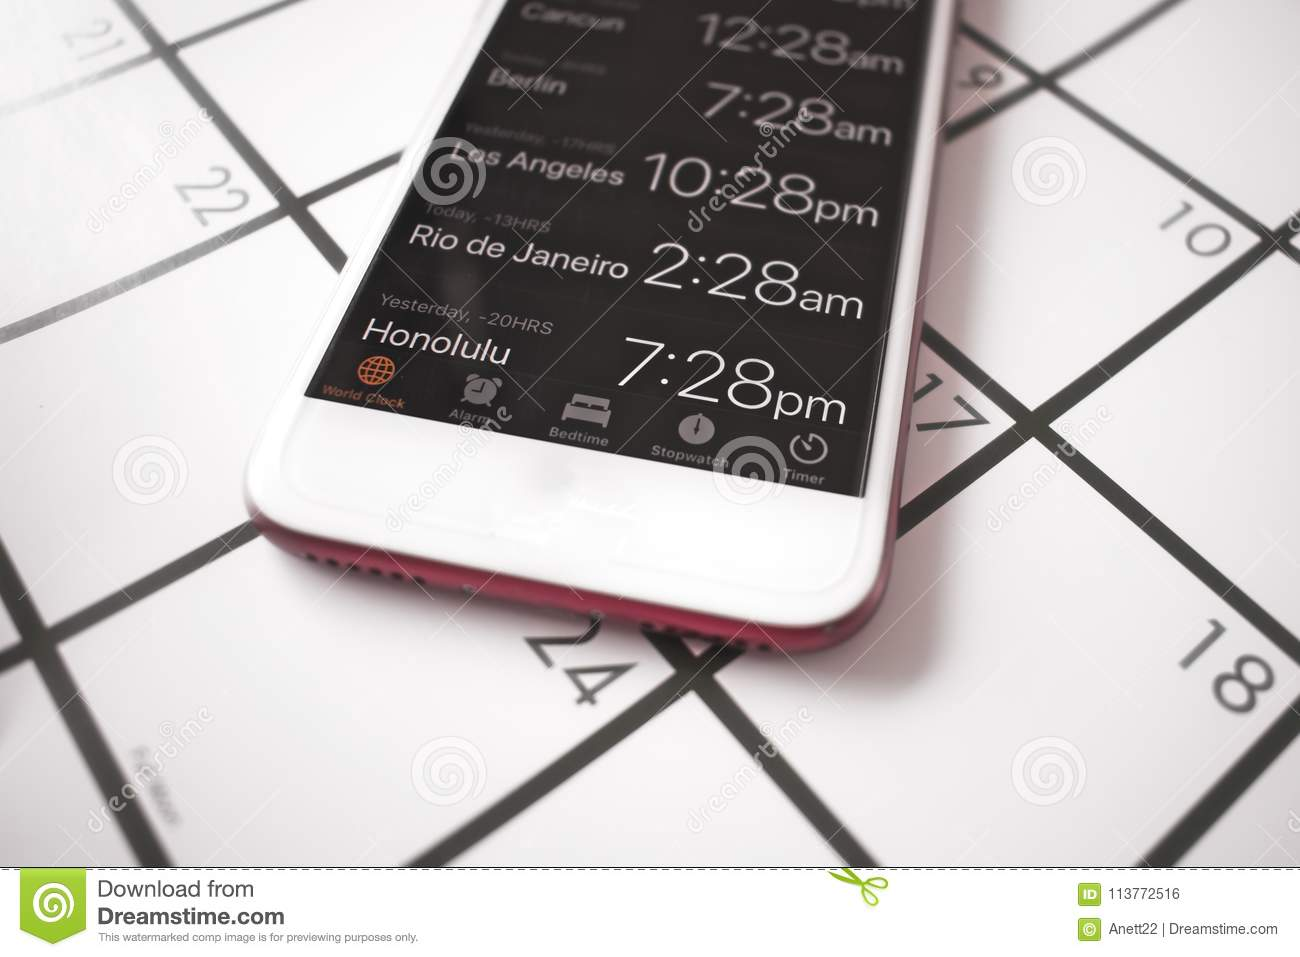 A Calendar And A World Time App On A Mobile Phone Are Used